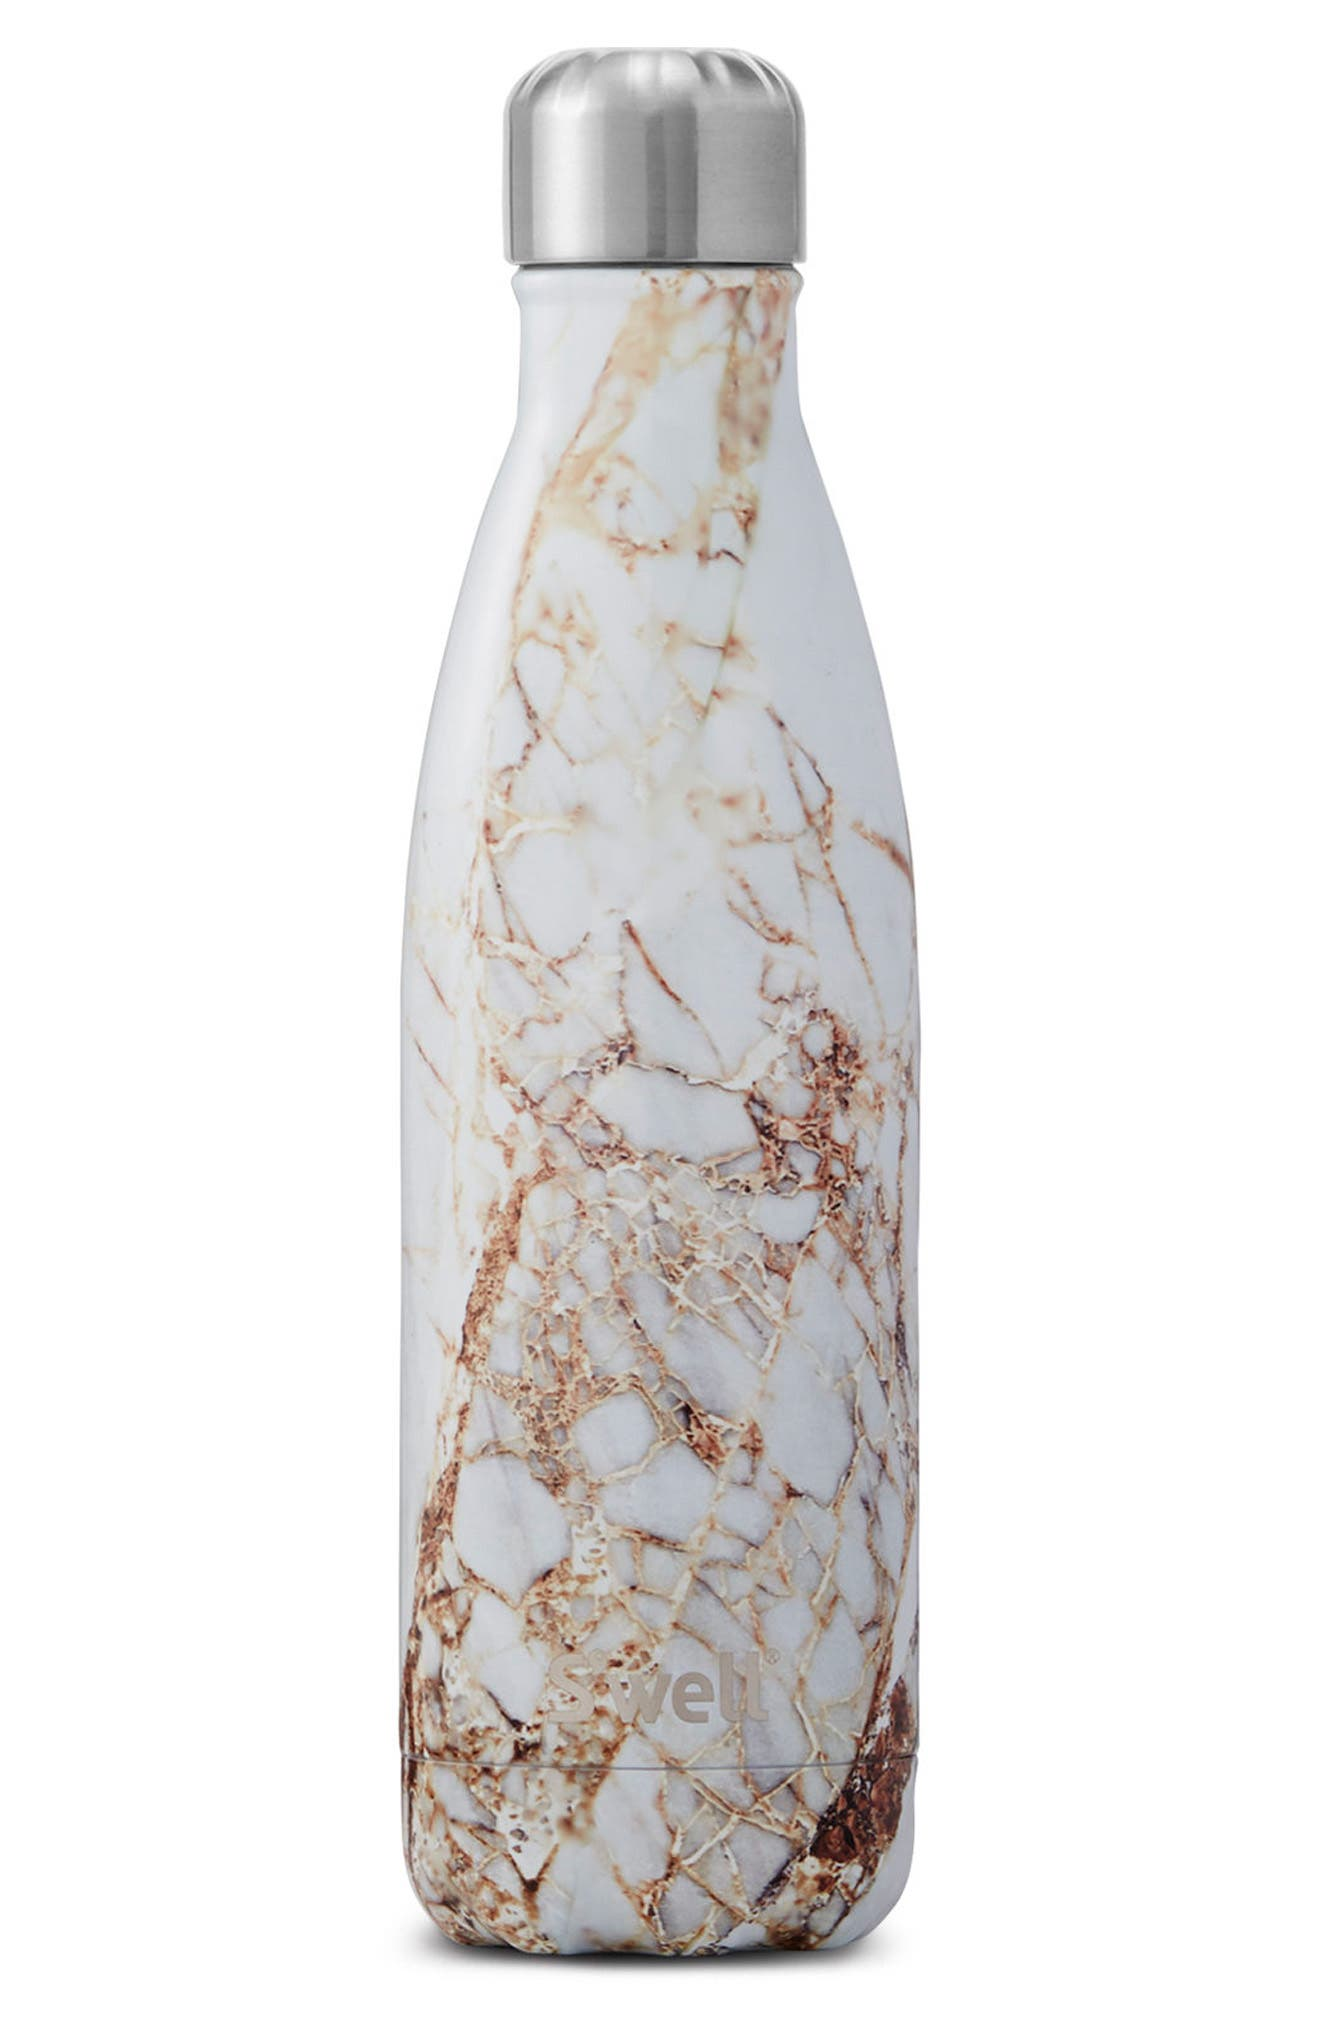 Elements Collection - Calacatta Gold Insulated Stainless Steel Water Bottle,                         Main,                         color, Calacatta Gold